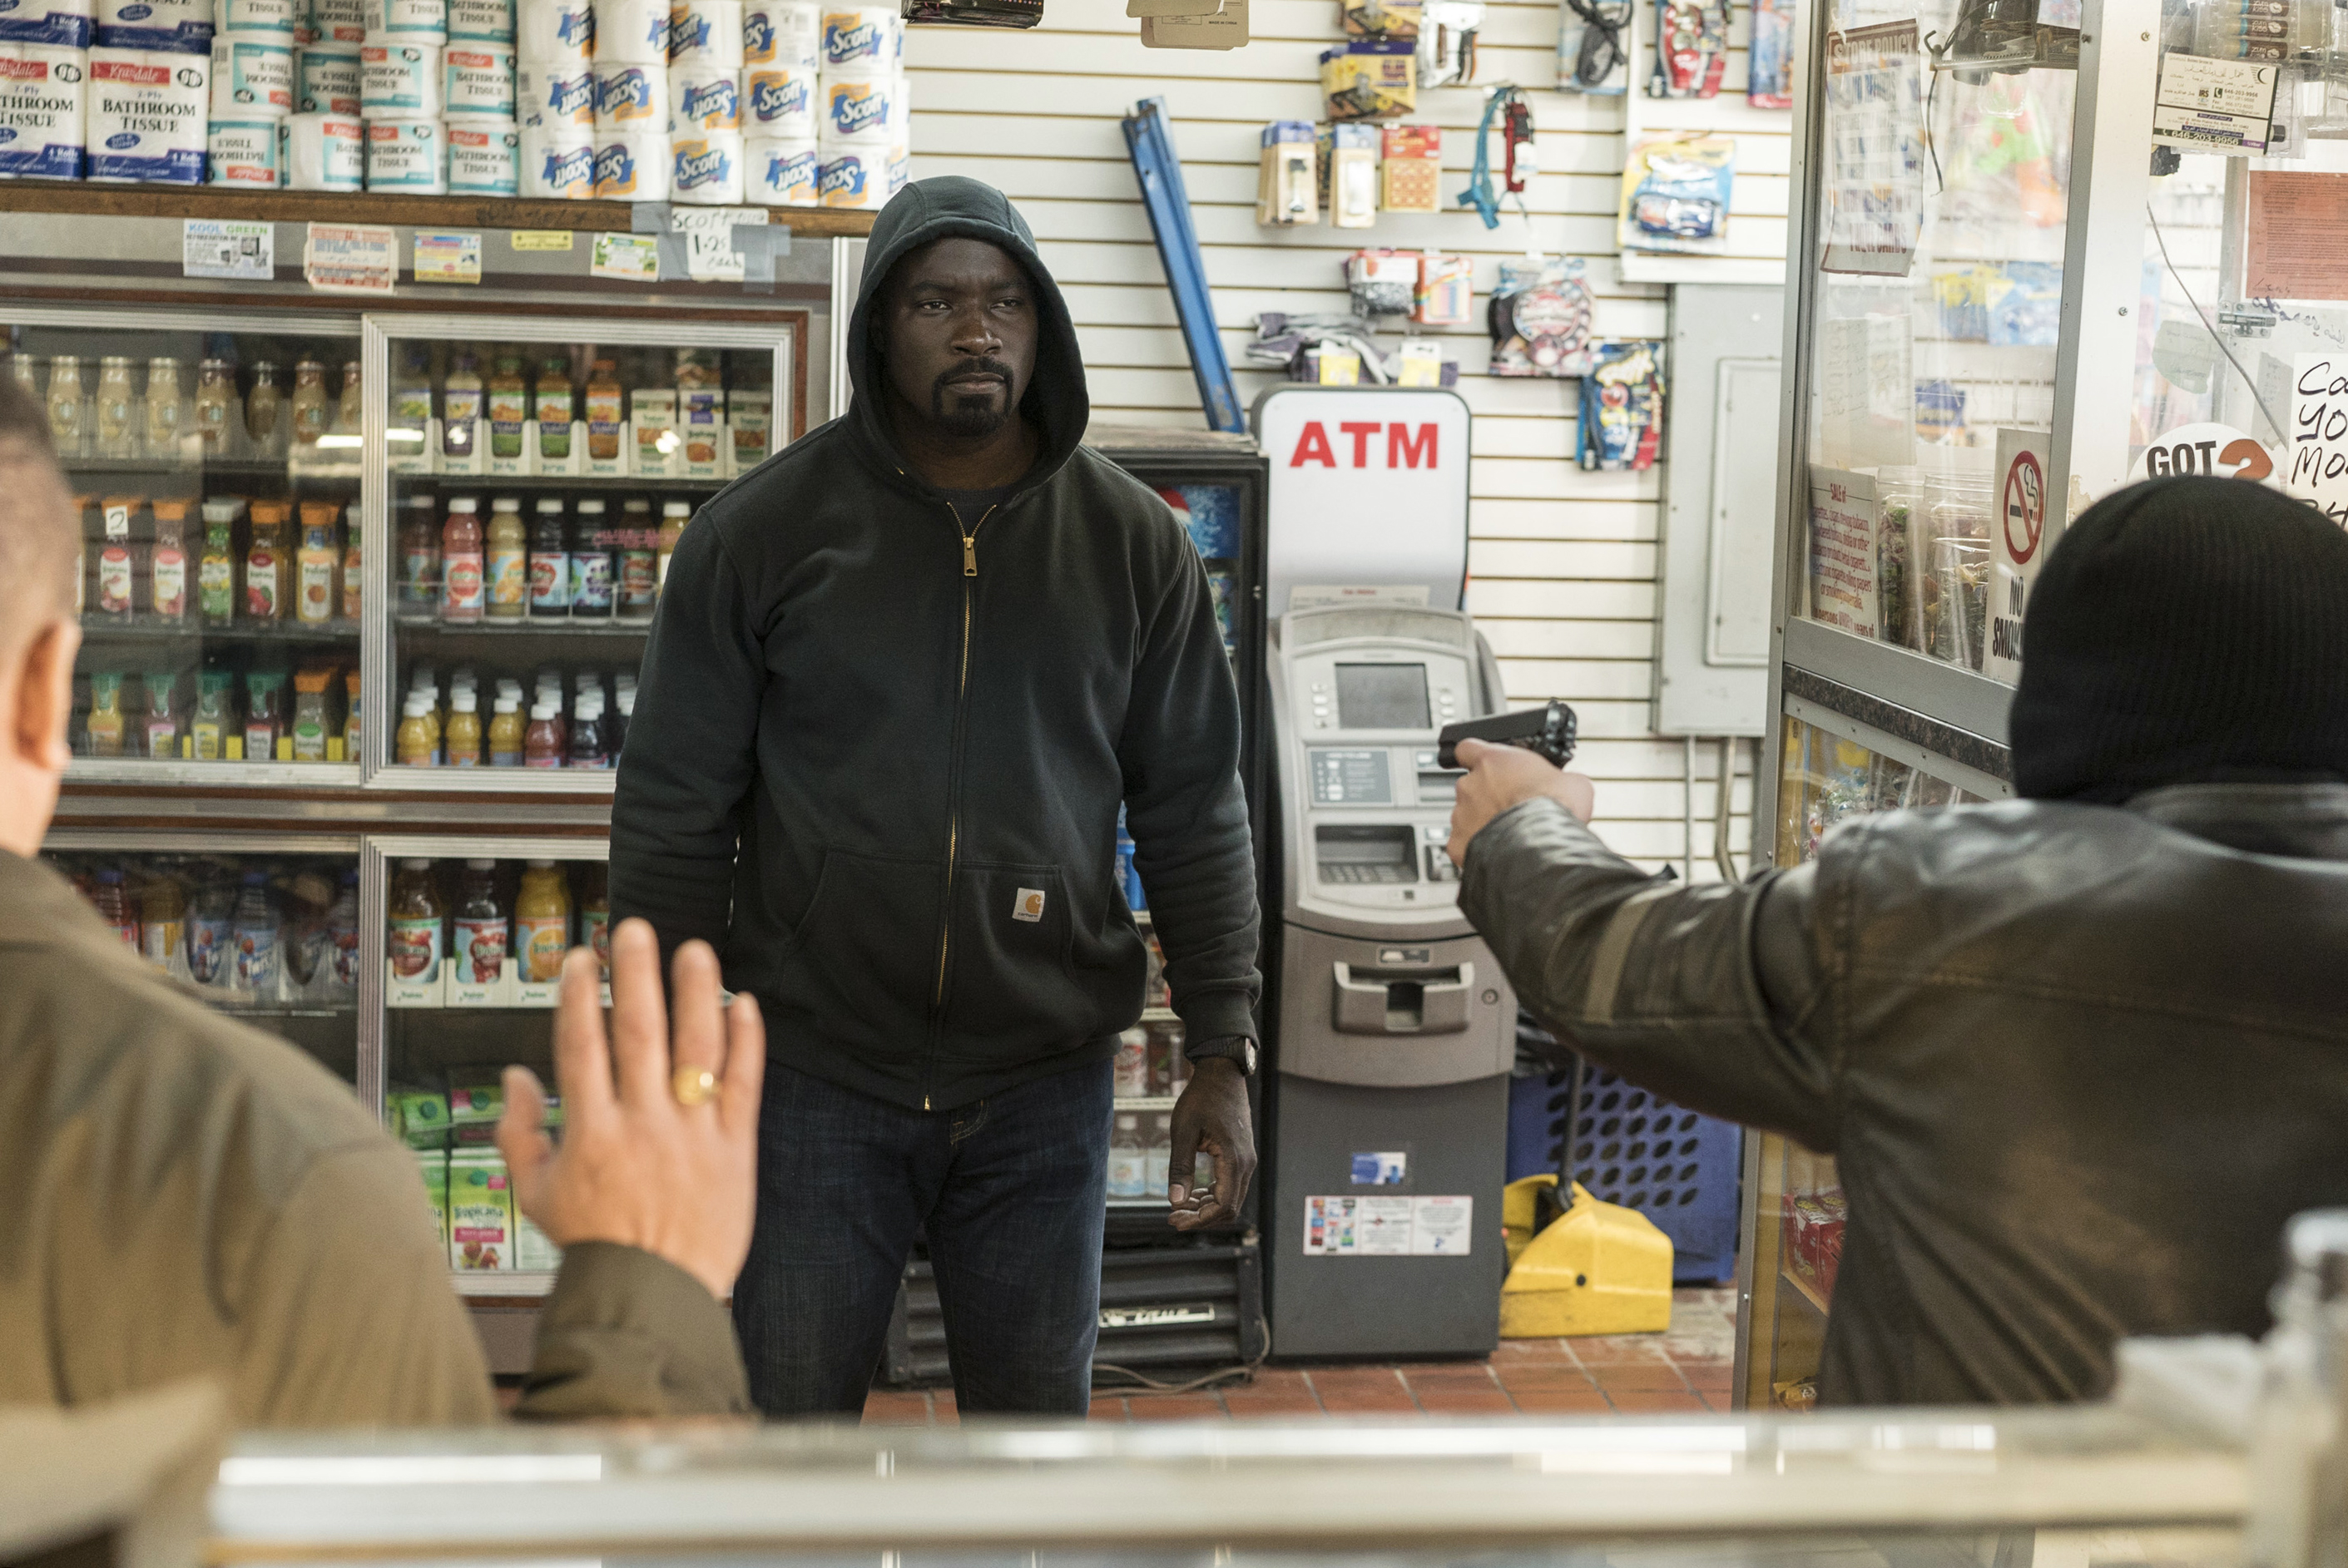 Luke Cage Featurette Shows The Journey of Harlem's Hero